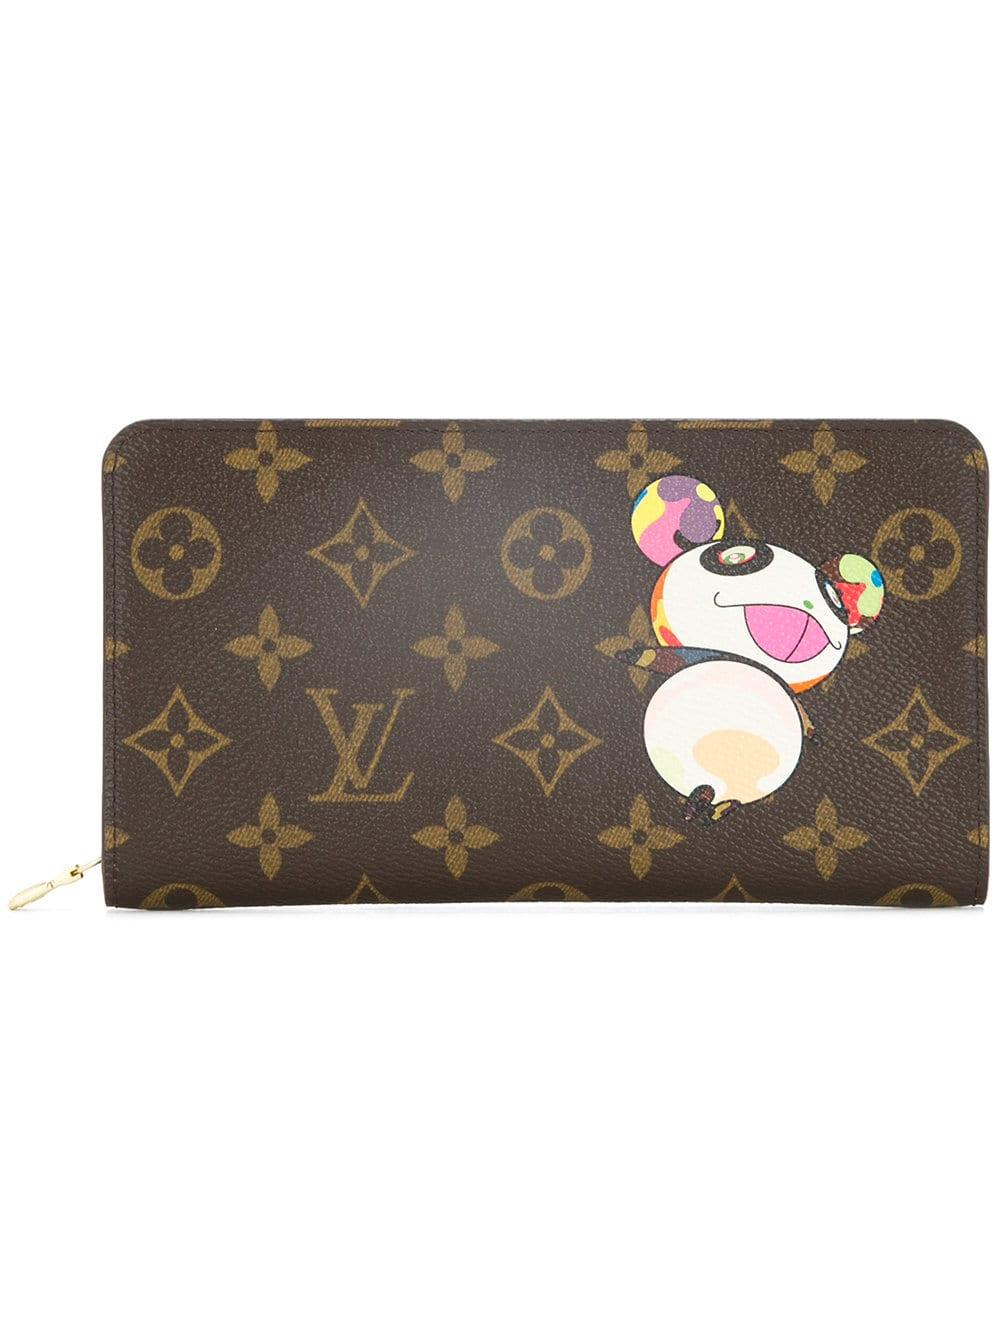 e37a7165900c Louis Vuitton Vintage Porte Monnaie Monogram Wallet - Farfetch In Brown